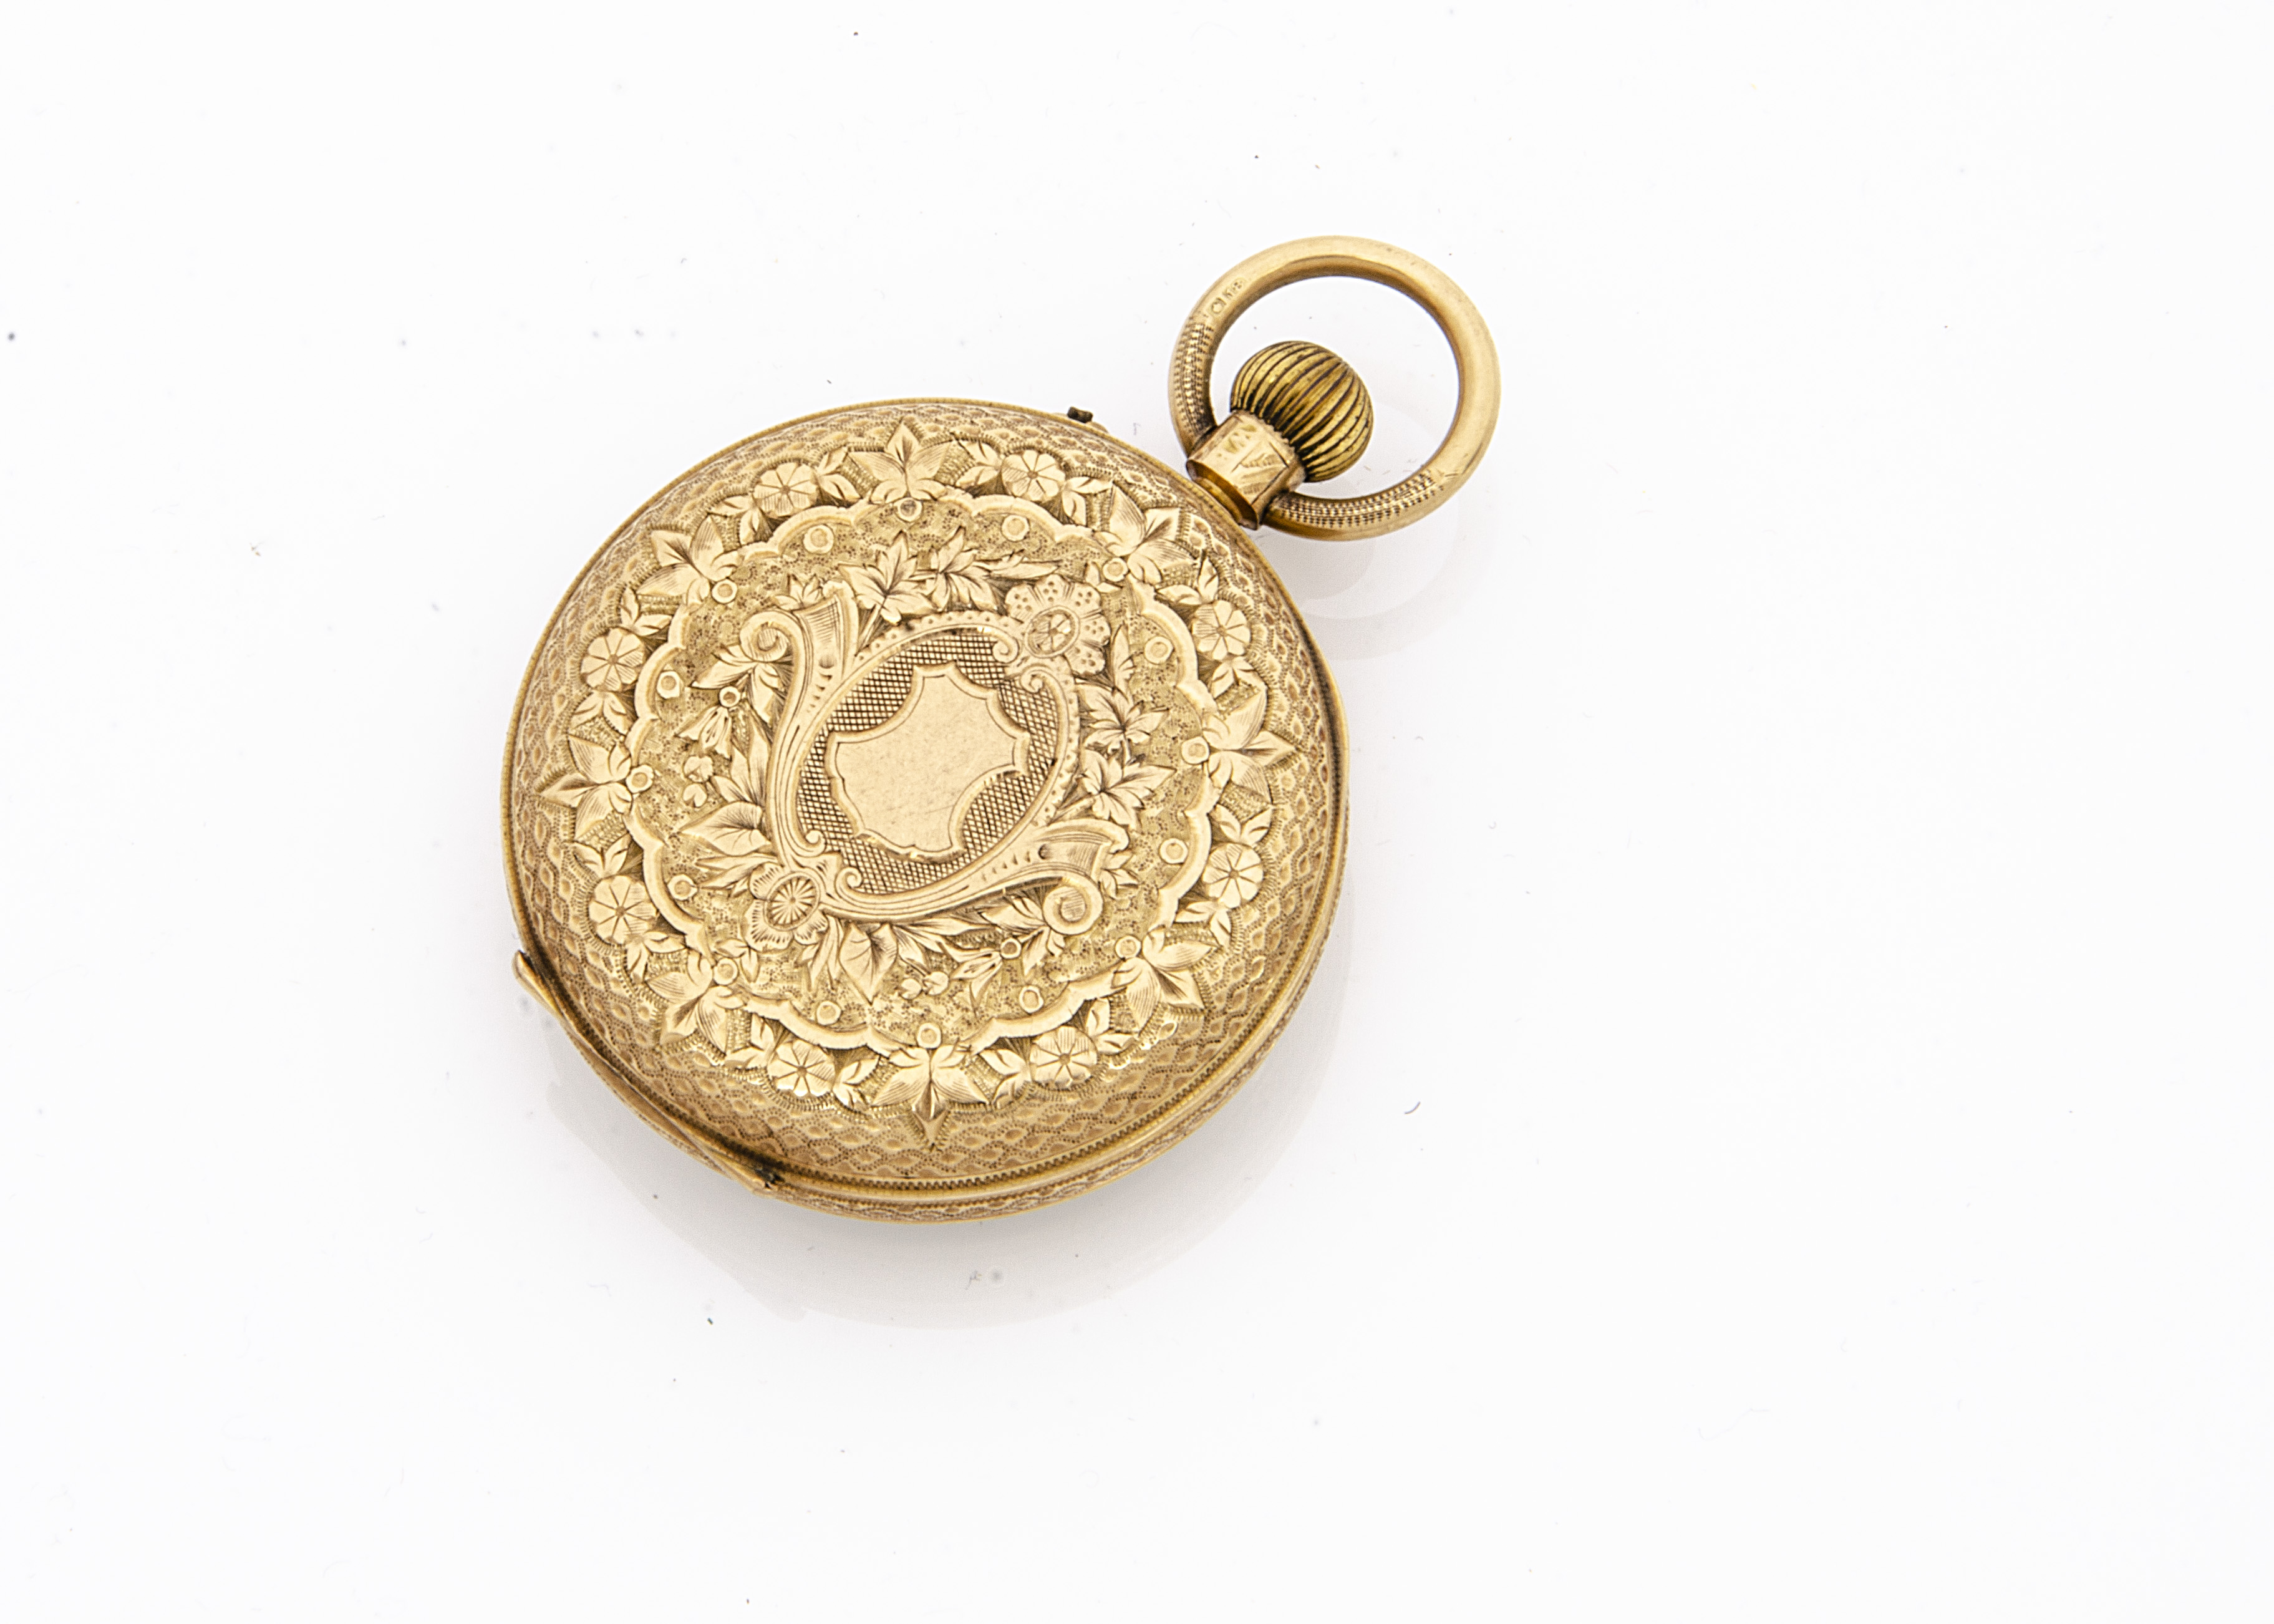 An Edwardian 18ct gold open faced pocket watch, 37mm, appears to run, 48.7g, hallmarked to rear - Image 2 of 3